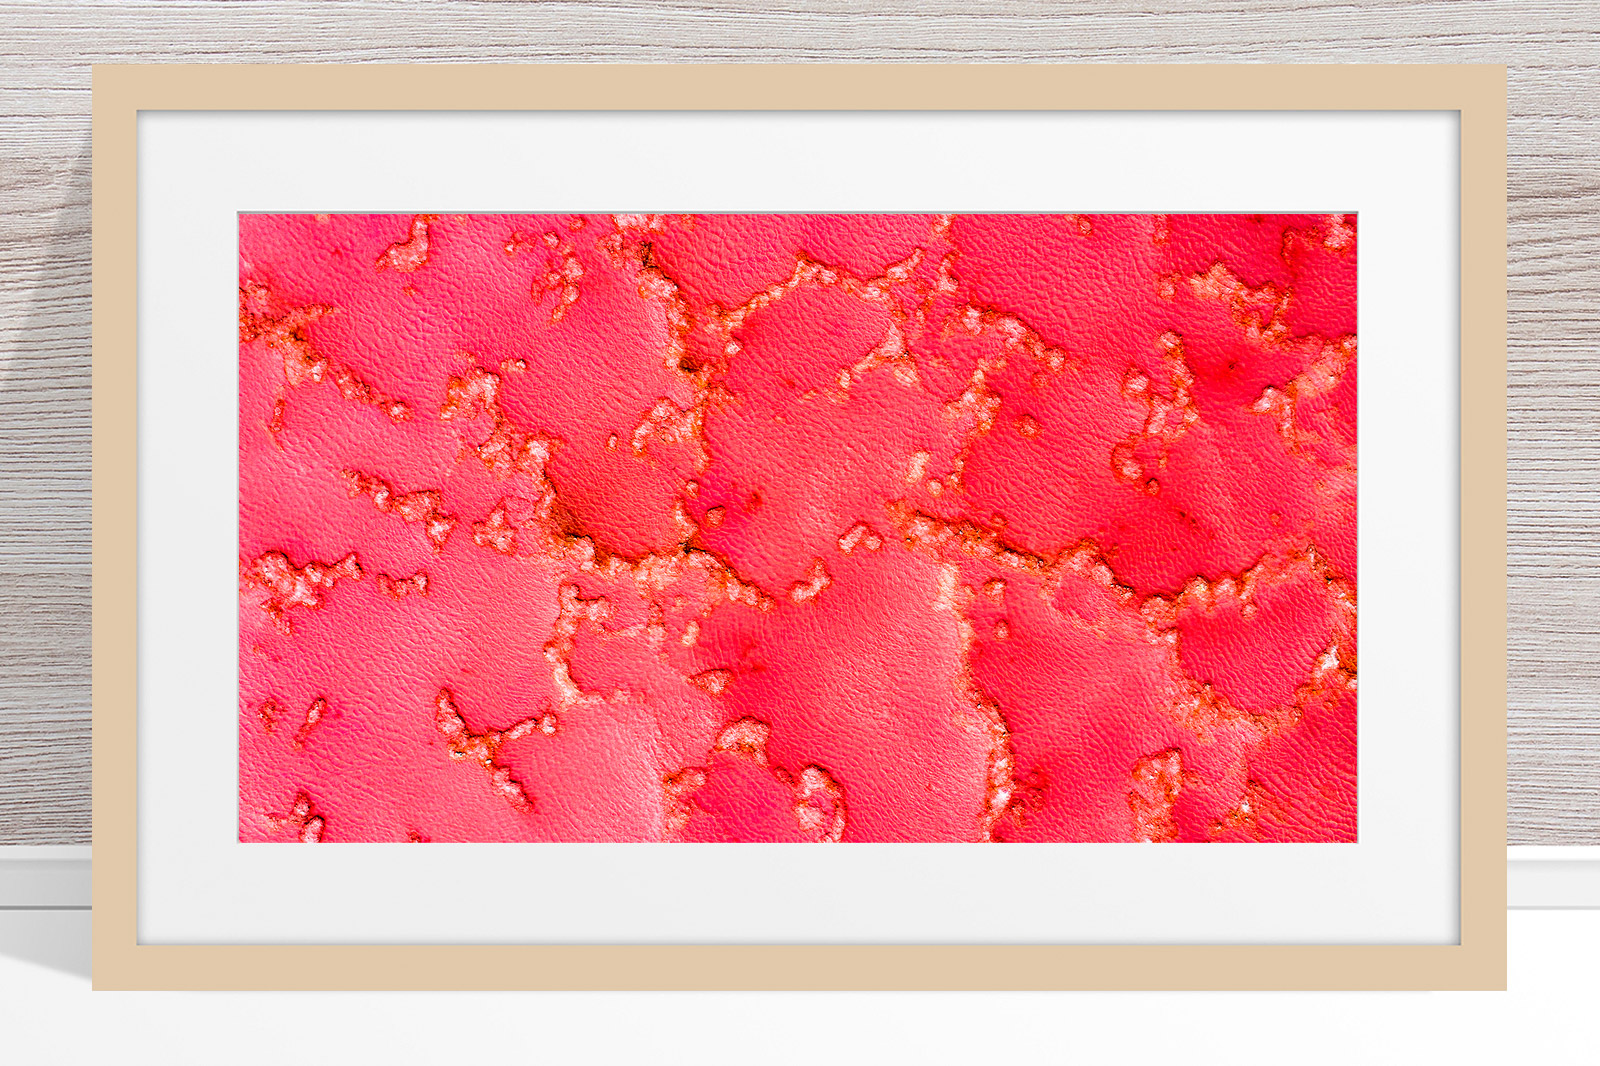 001 - Jason Mazur - 'Pink Lake, Port Gregory' Light Frame